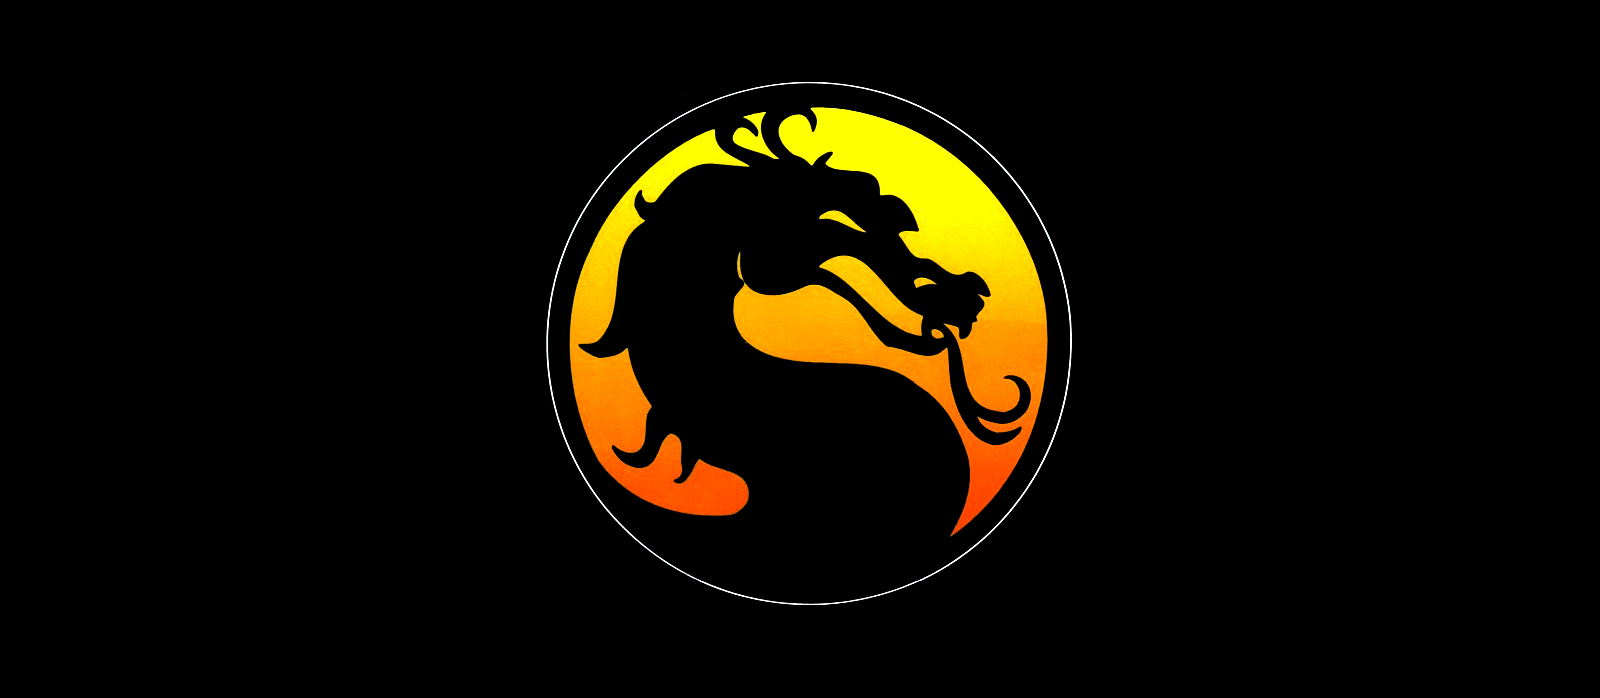 Nearly 30 years ago, Mortal Kombat's blood forever changed the video game industry